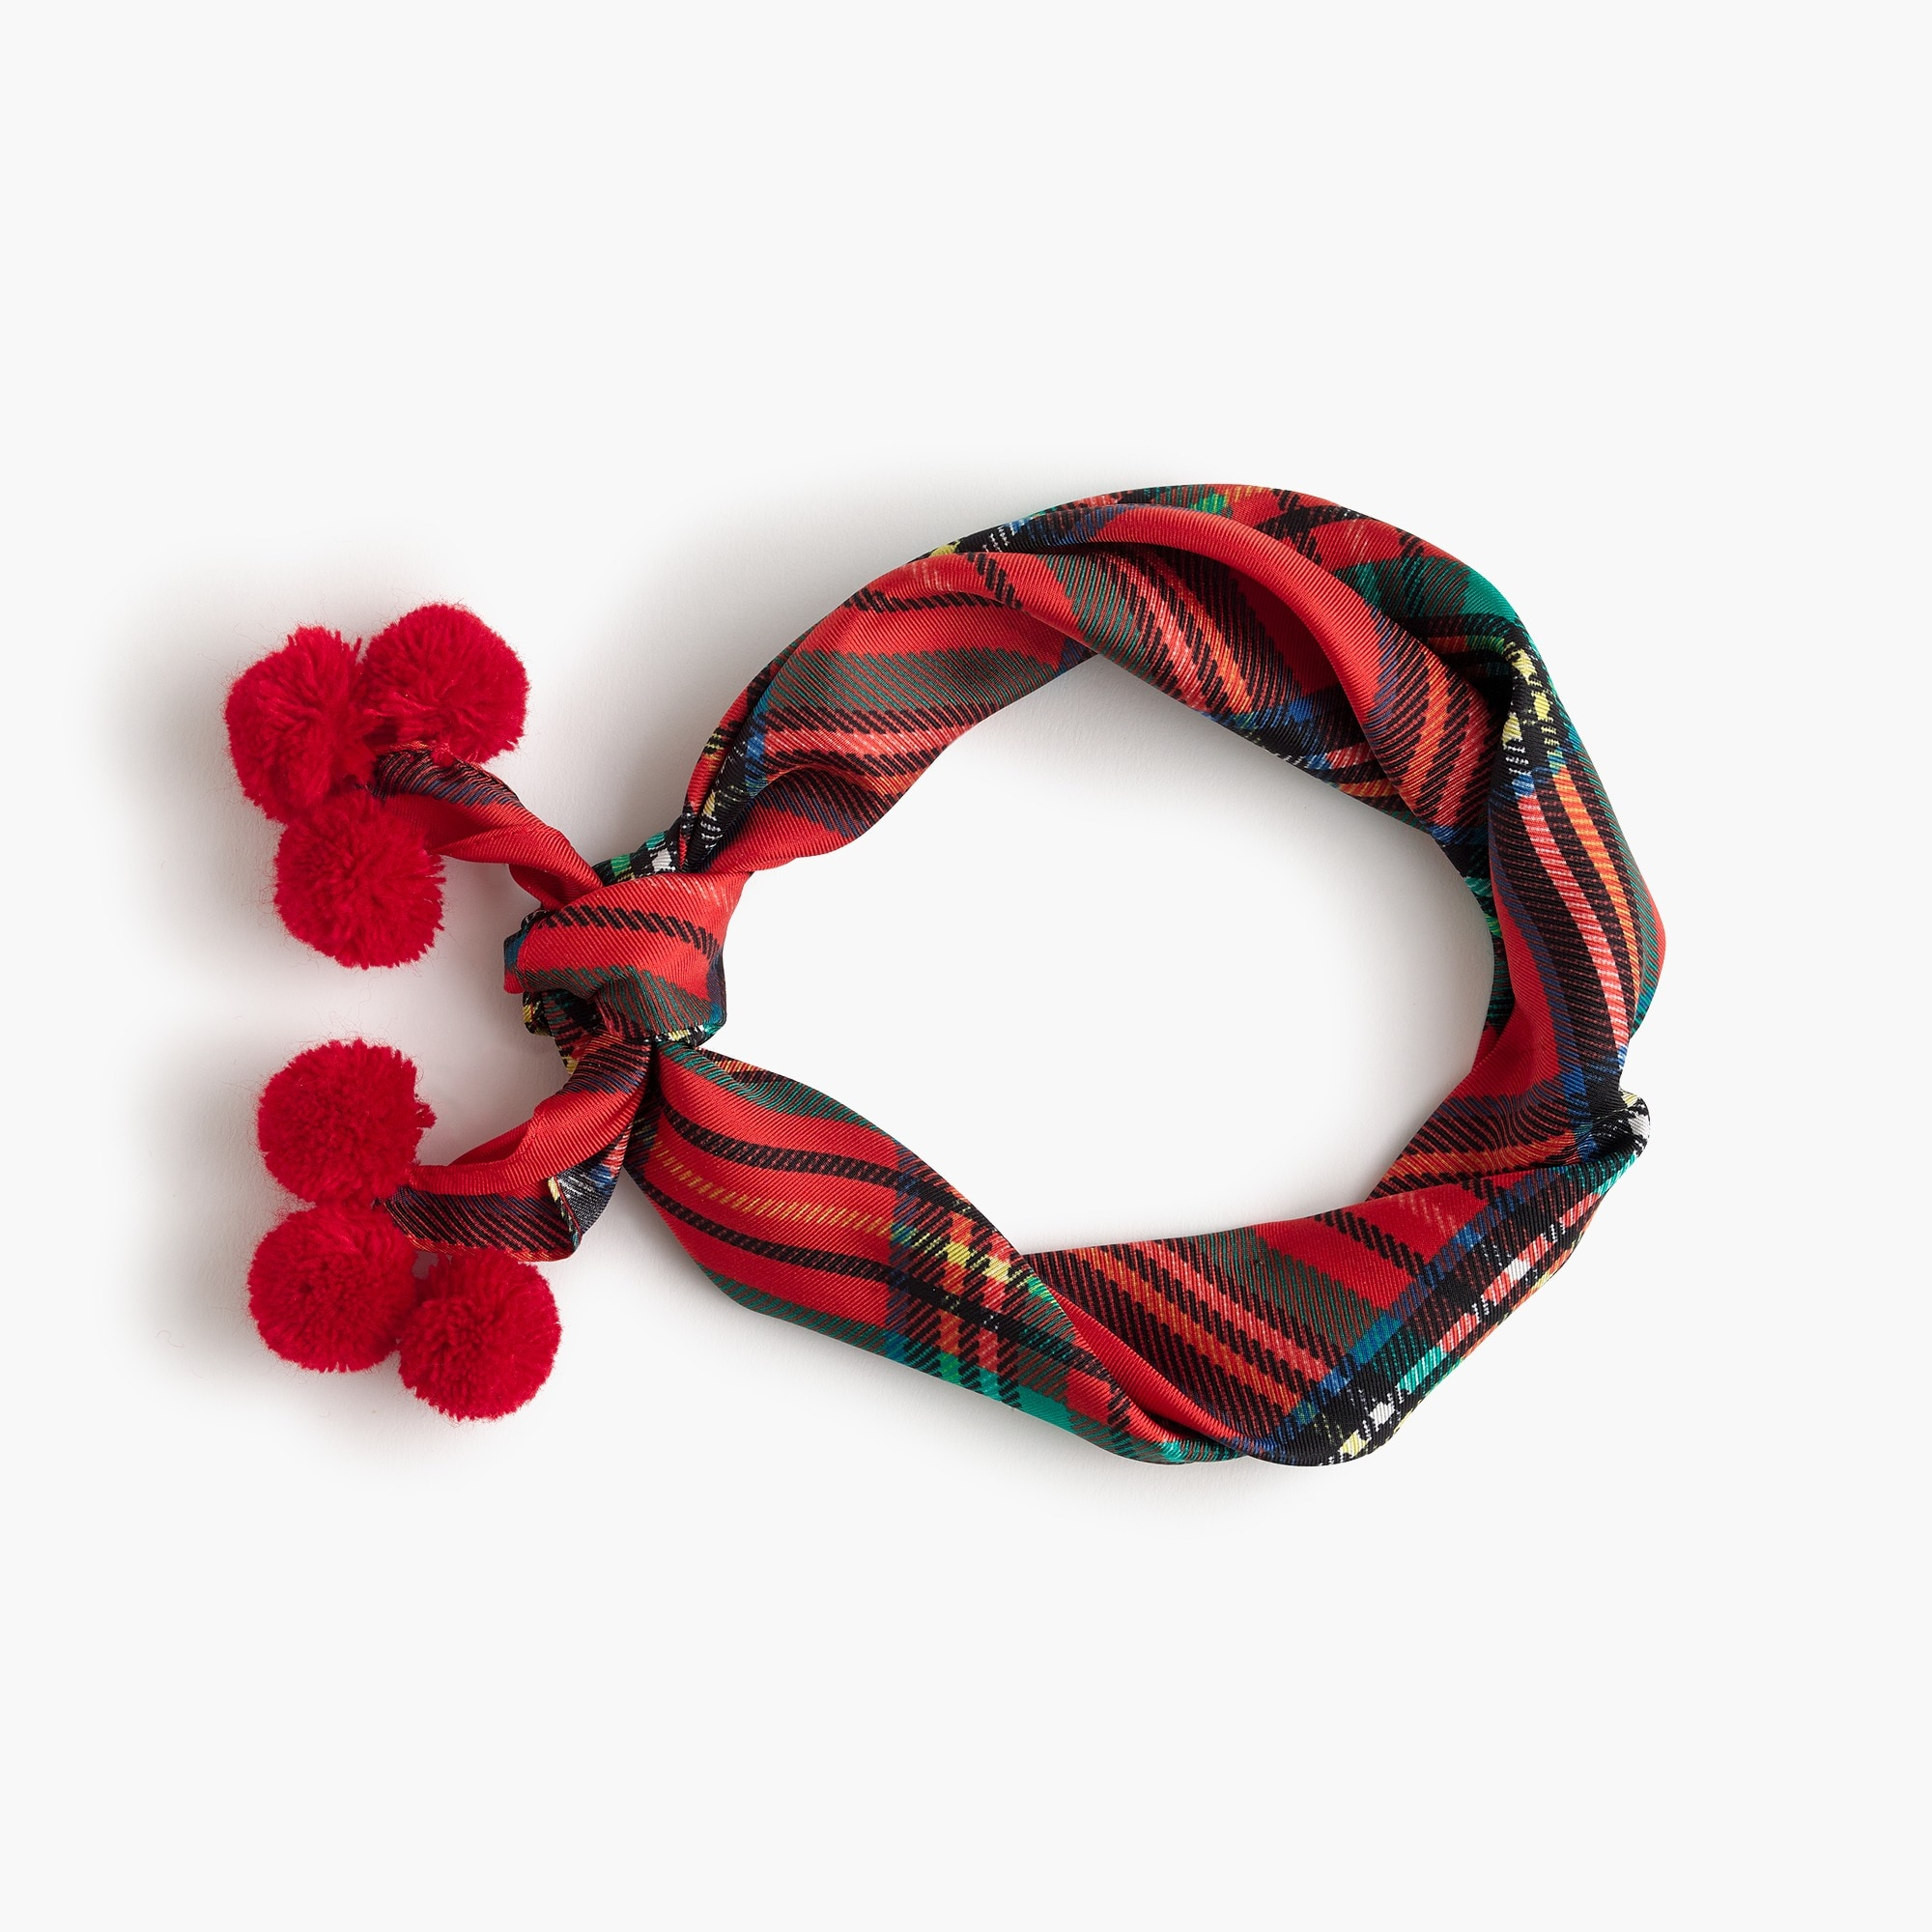 Italian silk scarf in tartan plaid with pom-poms